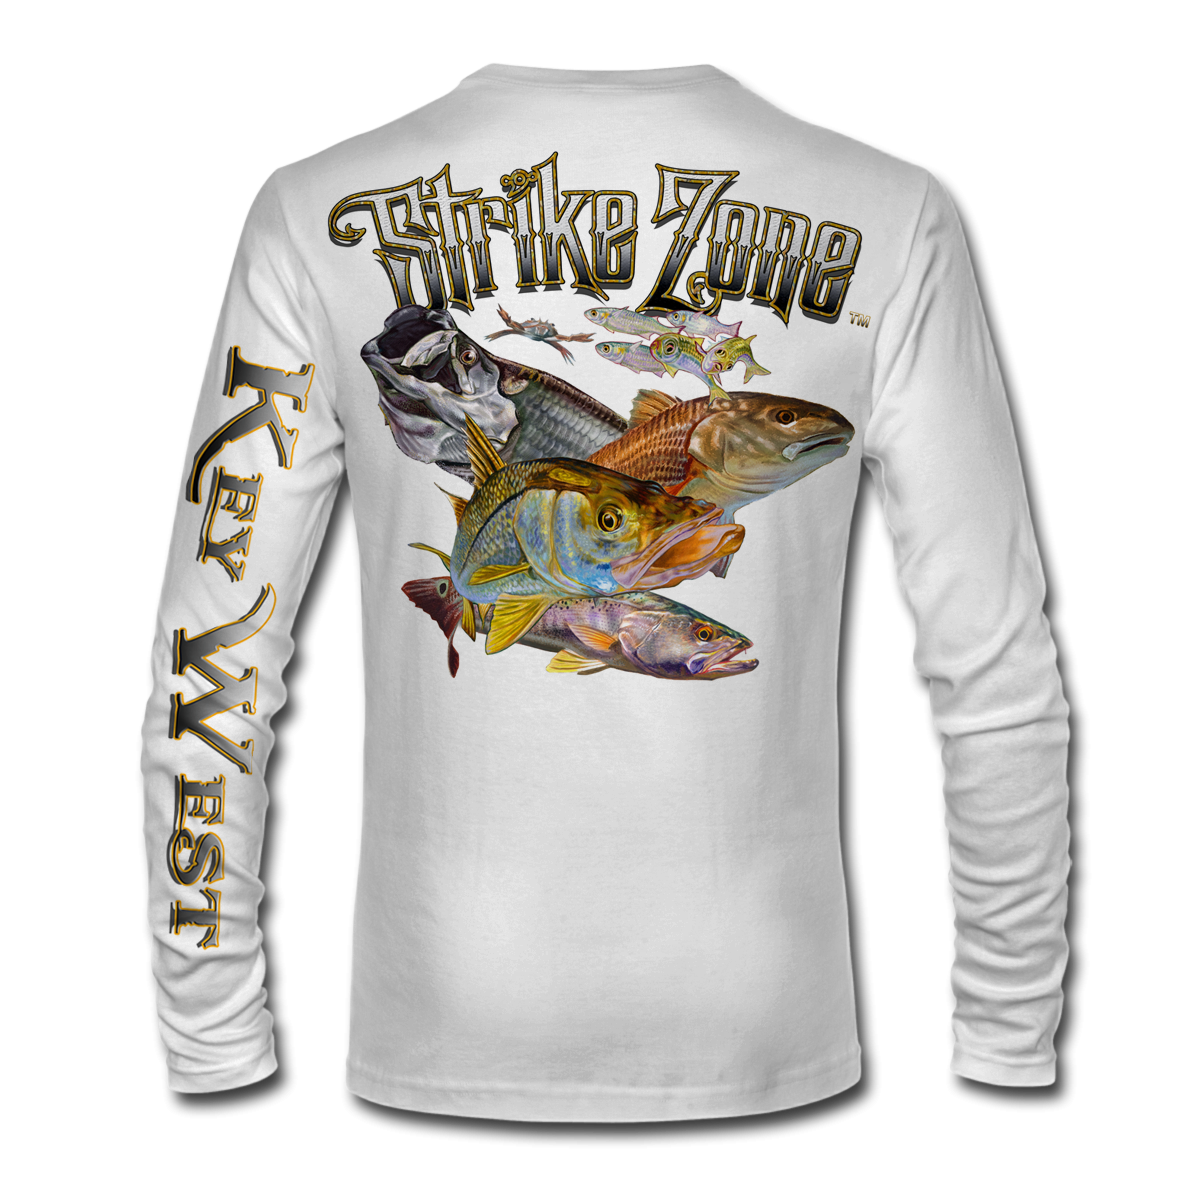 jason-mathias-strike-zone-inshore-slam-fishing-shirt-white-back.png